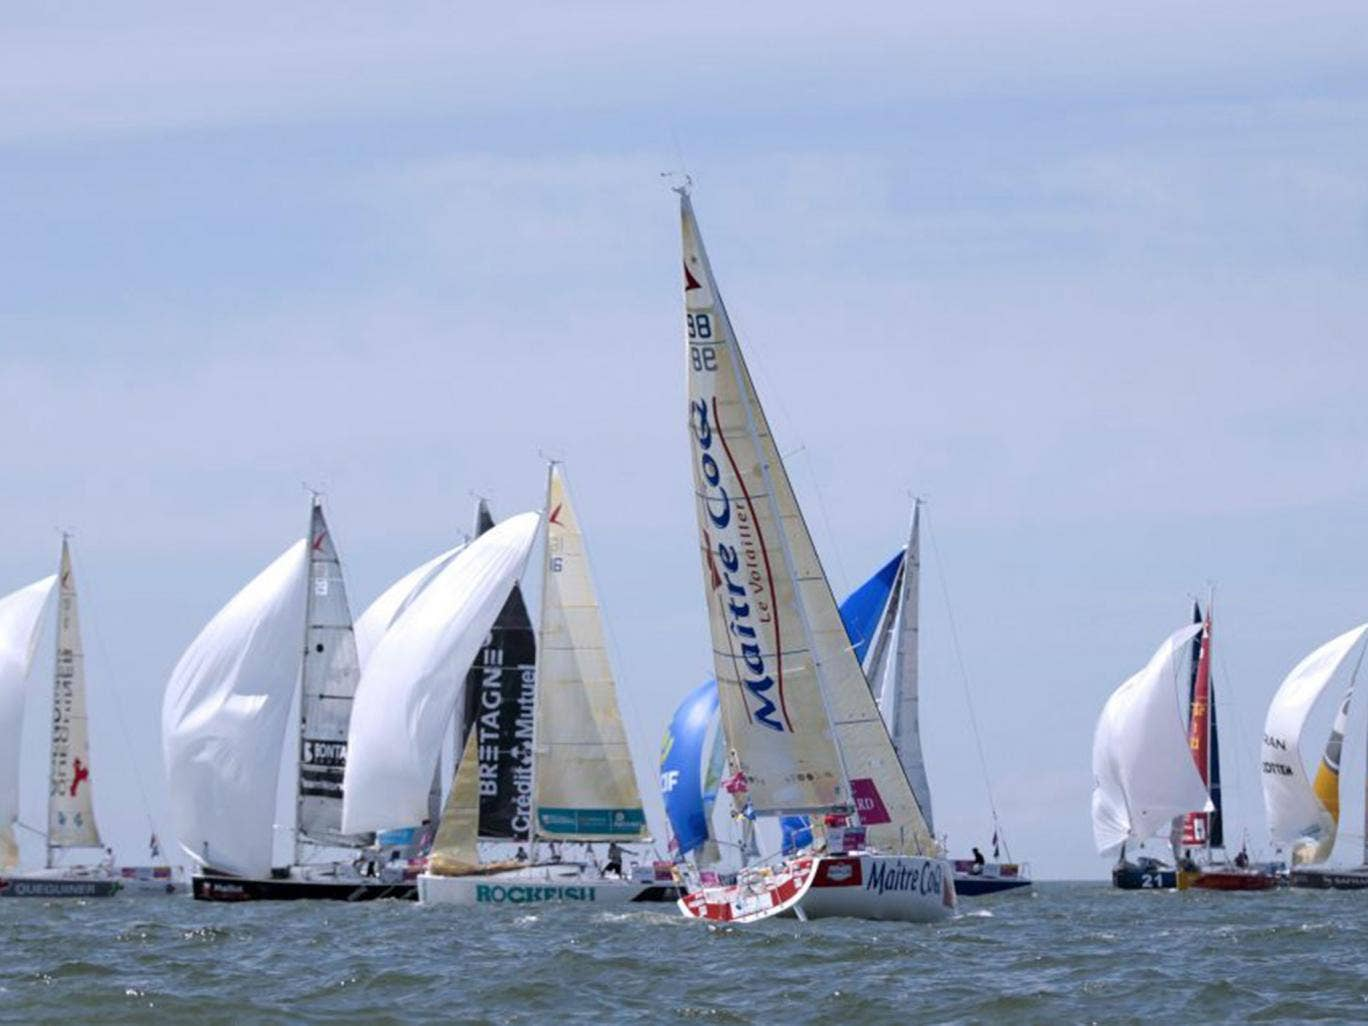 The Figaro solo race will  begin its second, 540-mile leg from Plymouth out to the Fastnet Rock off the south-west corner of Ireland